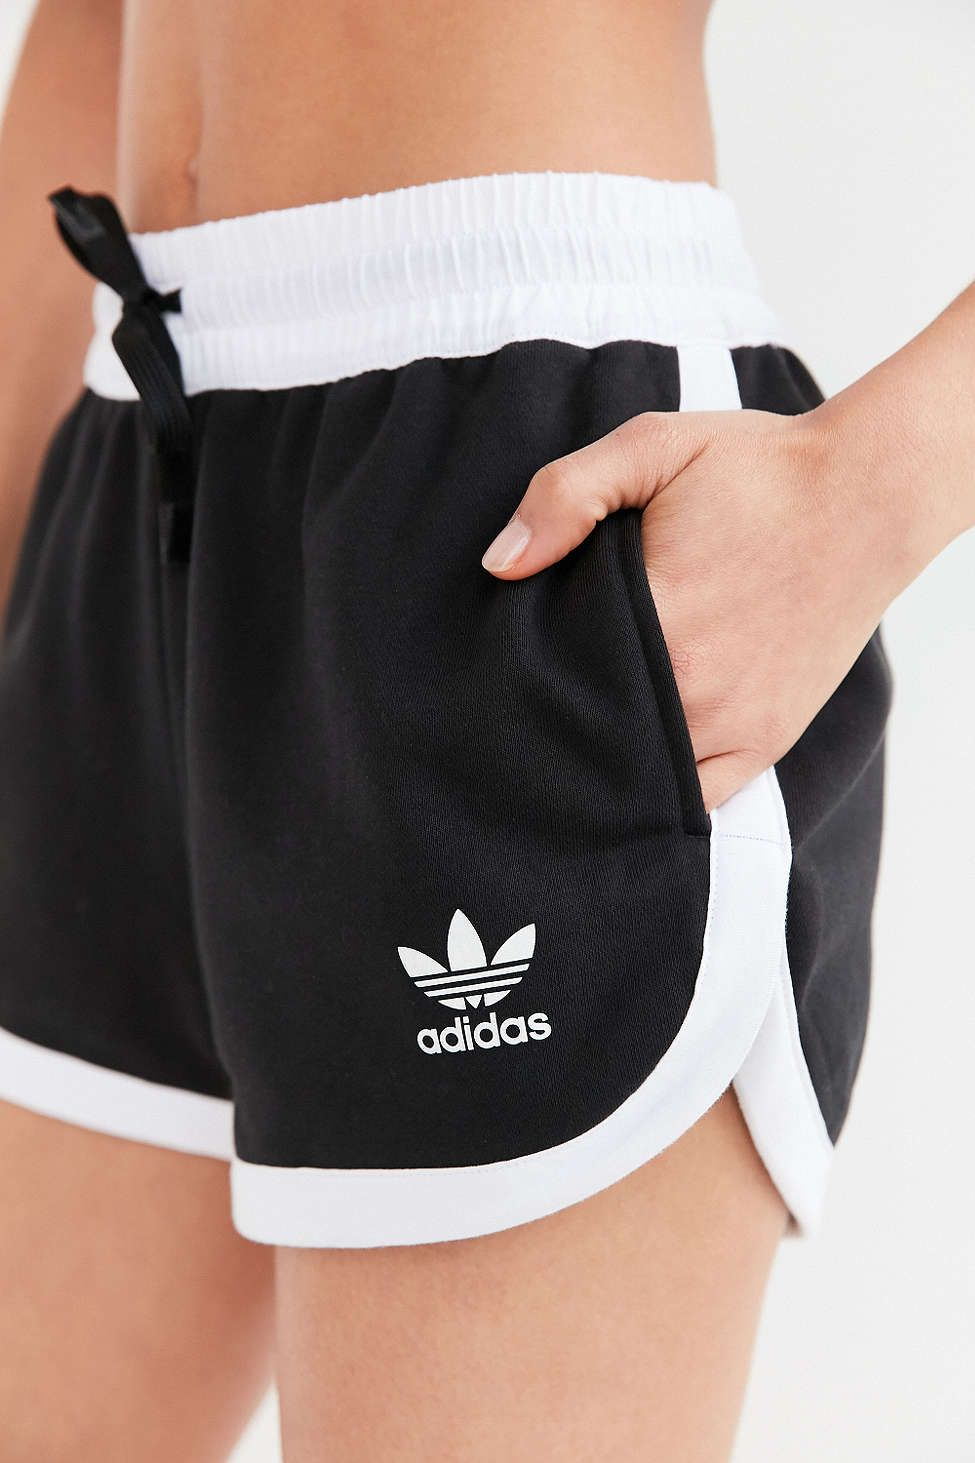 online retailer 19533 c1d6a adidas Originals French Terry Running Short - Urban Outfitters